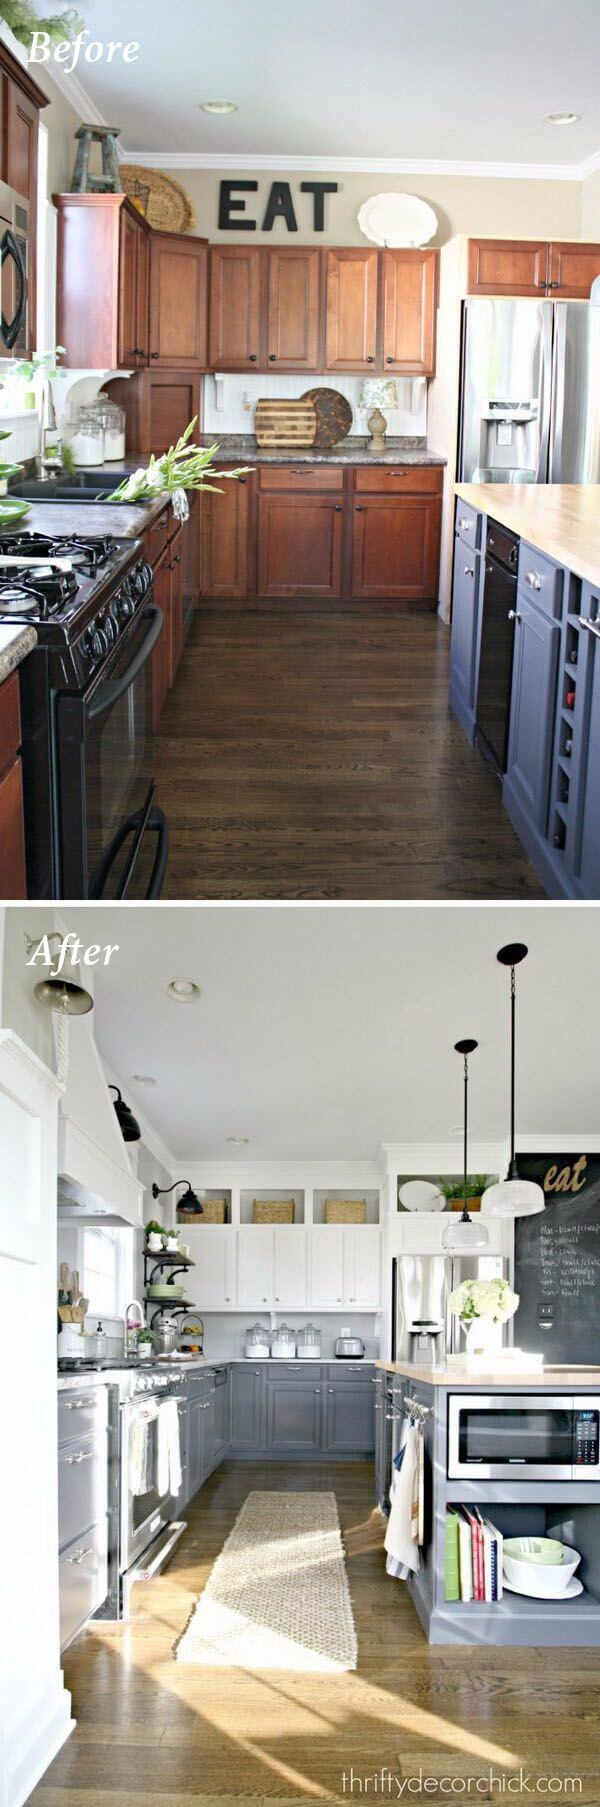 Remodelling Projects and Ideas for Kitchens